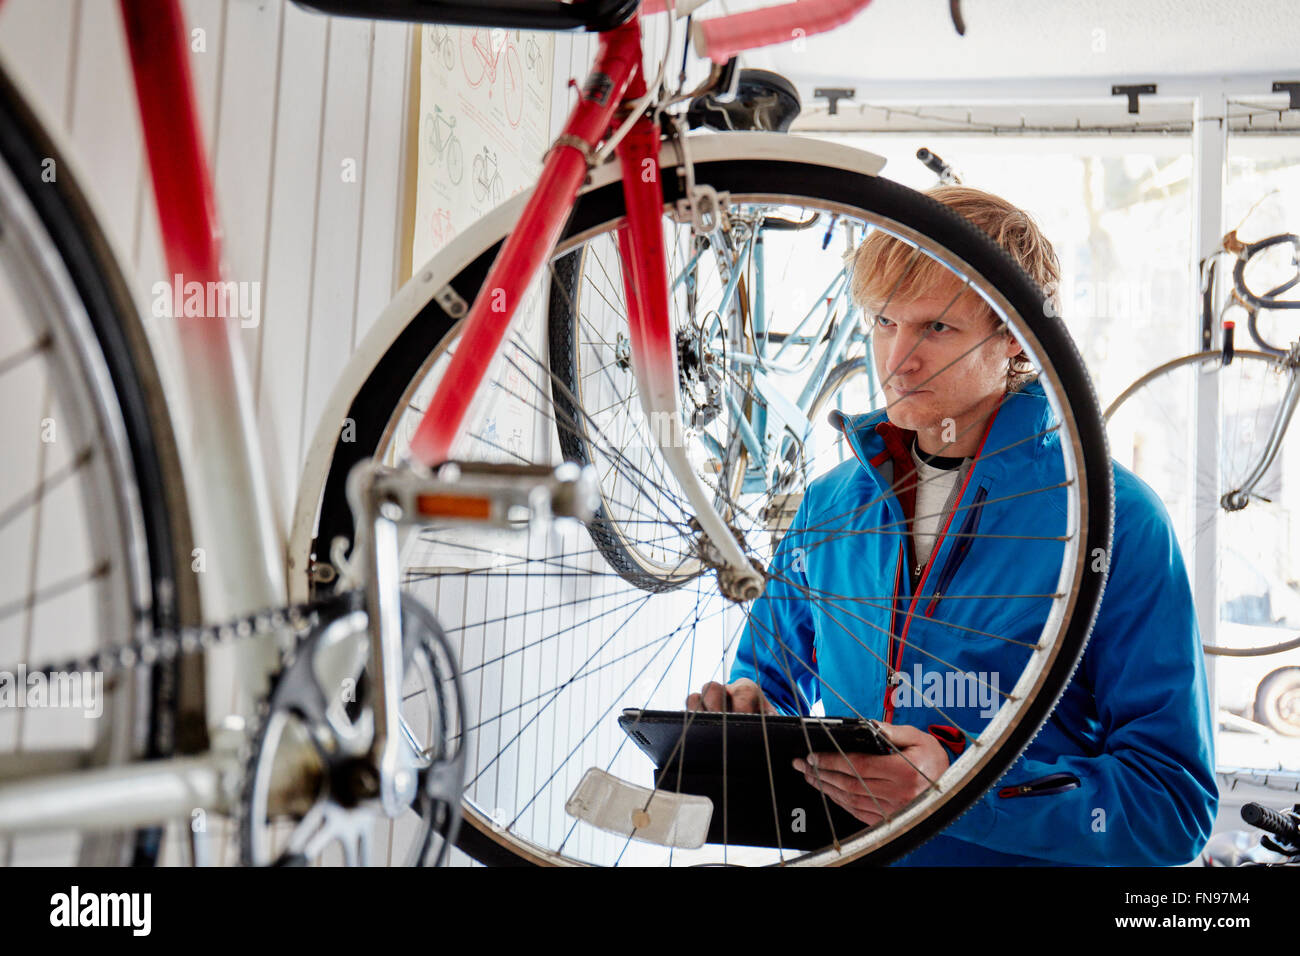 A young man working in a cycle shop, repairing a bicycle. - Stock Image